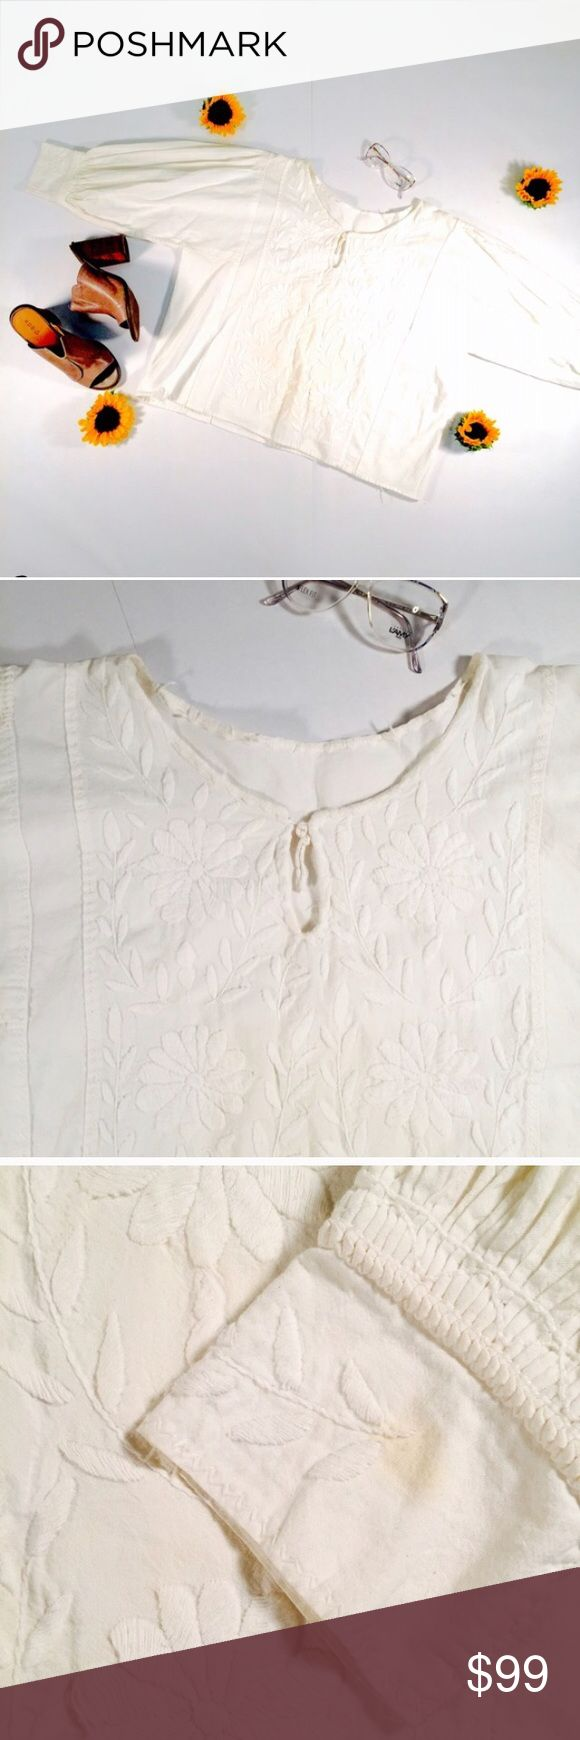 """VINTAGE CREAM EMBROIDERED BOXY PULLOVER TOP WHITE Incredible embroidered 1960s (or earlier) smock, authentic vintage, incredible workmanship. Oversized fit perfect with jeans and ankle boots. Handmade.          CONDITION: EUC, has one yellow discoloration on the left cuff of the top (may come out with treatment)  CHEST: 50"""" WAIST: open  LENGTH: 23.5"""" INSEAM: *All measurements taken while item is laid flat (doubled when necessary) and measured across the front  MATERIAL: Unknown, feels like…"""